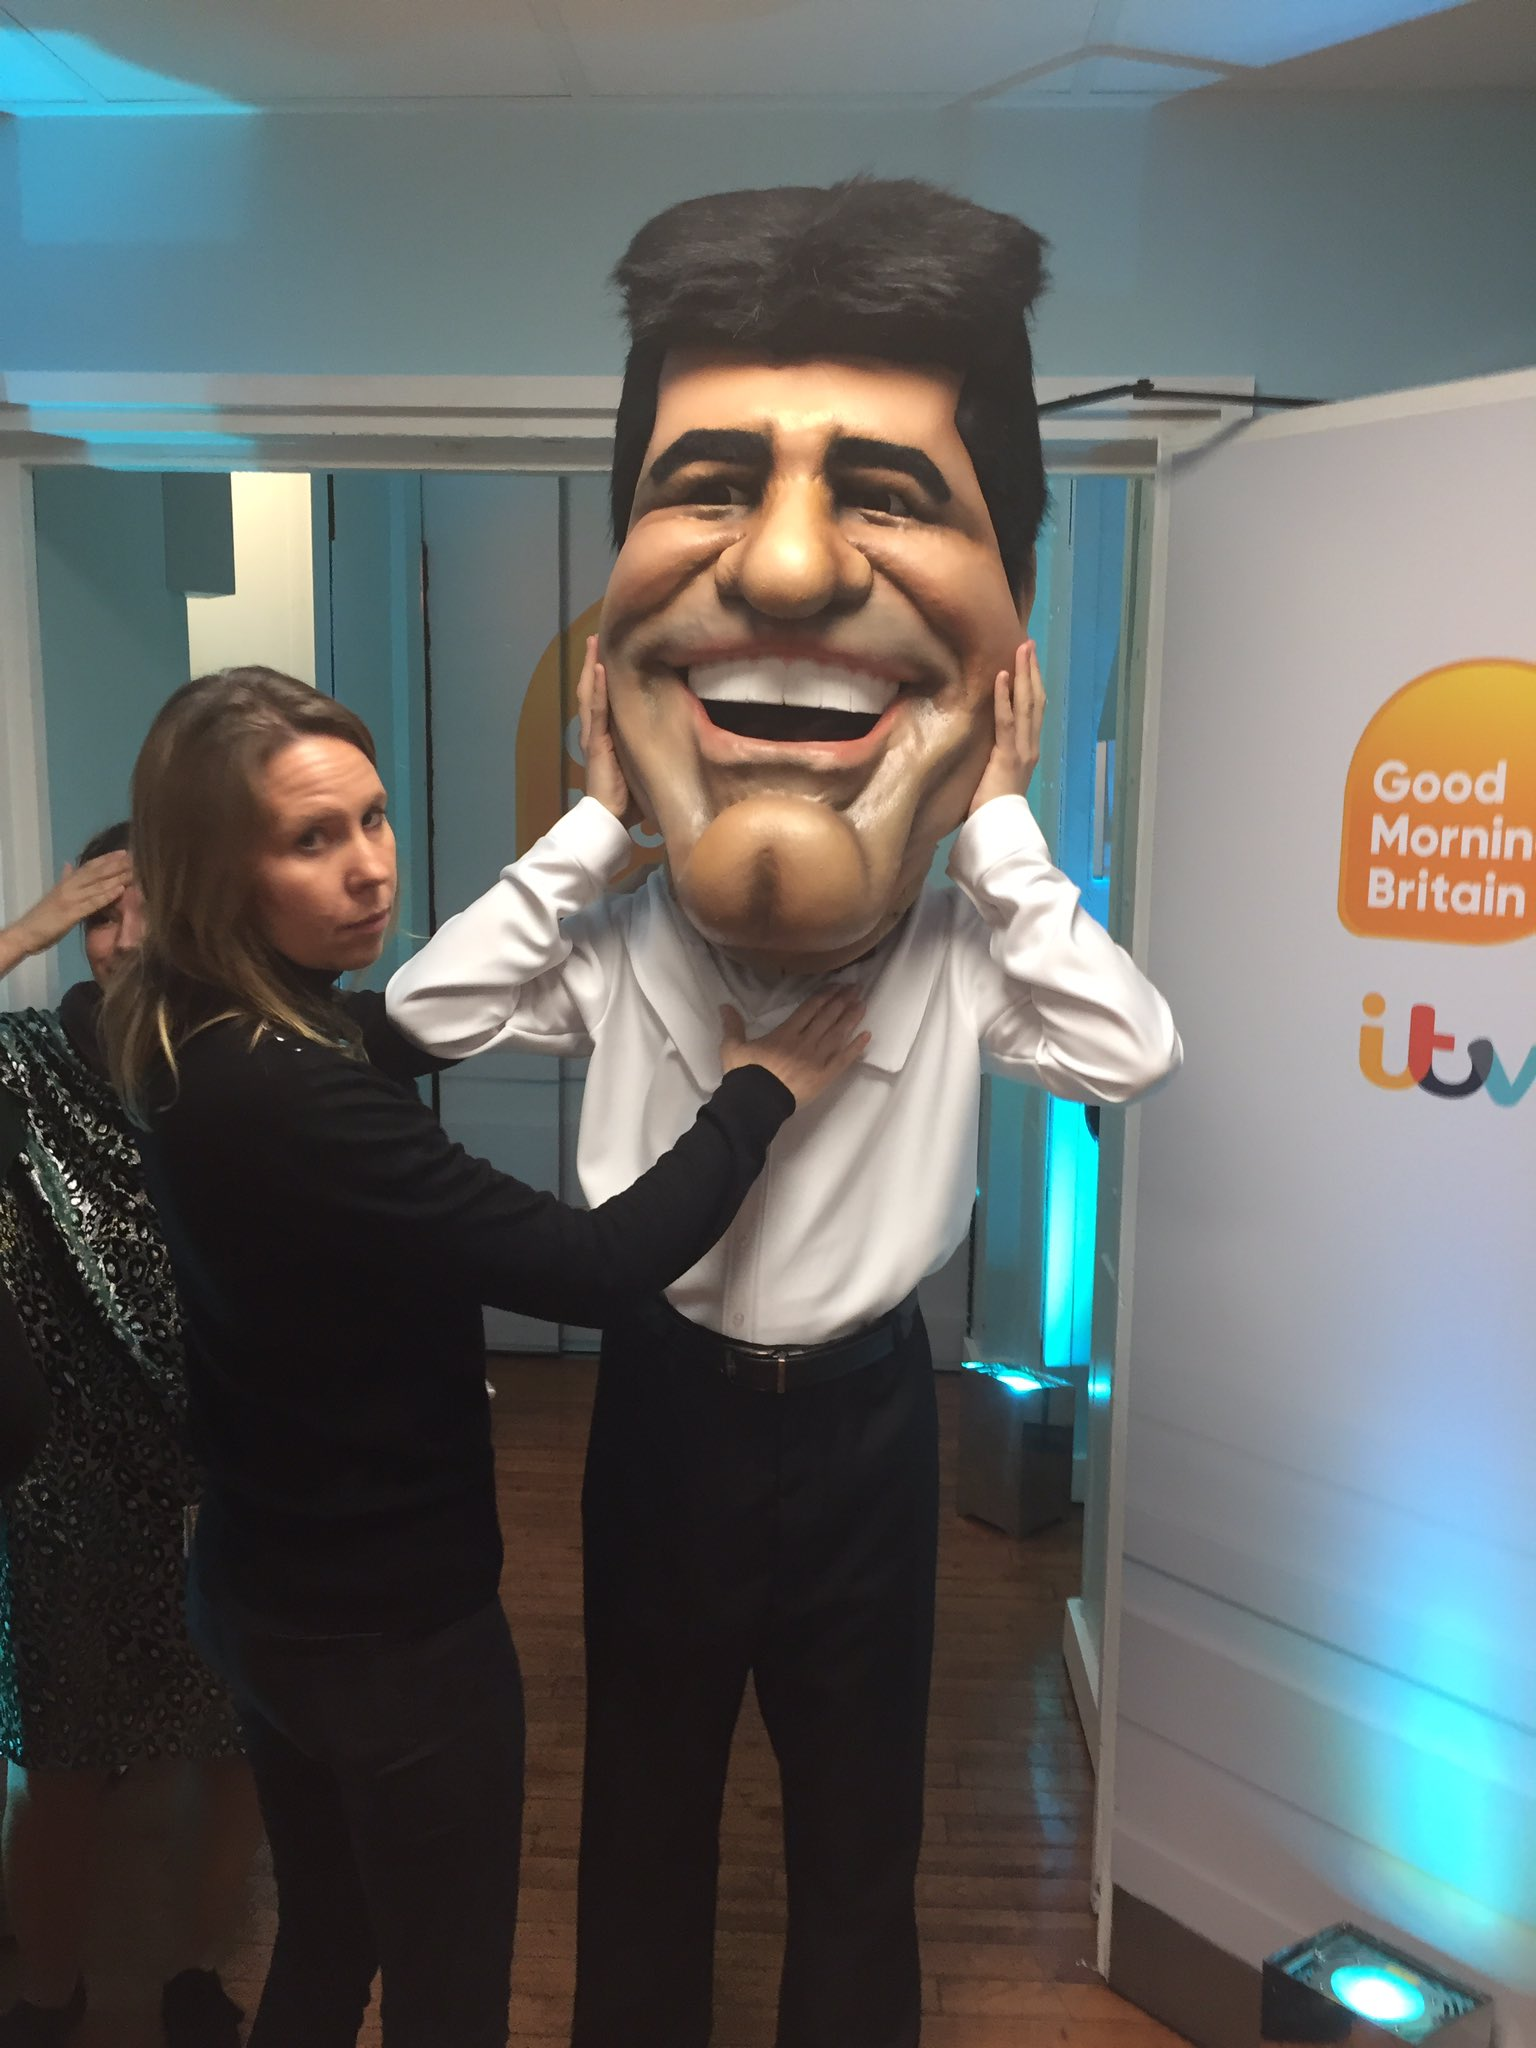 RT @GMB: You're in for a treat this morning, we've got @SimonCowell live in the @GMB studios 😀 https://t.co/NqHghESN6t